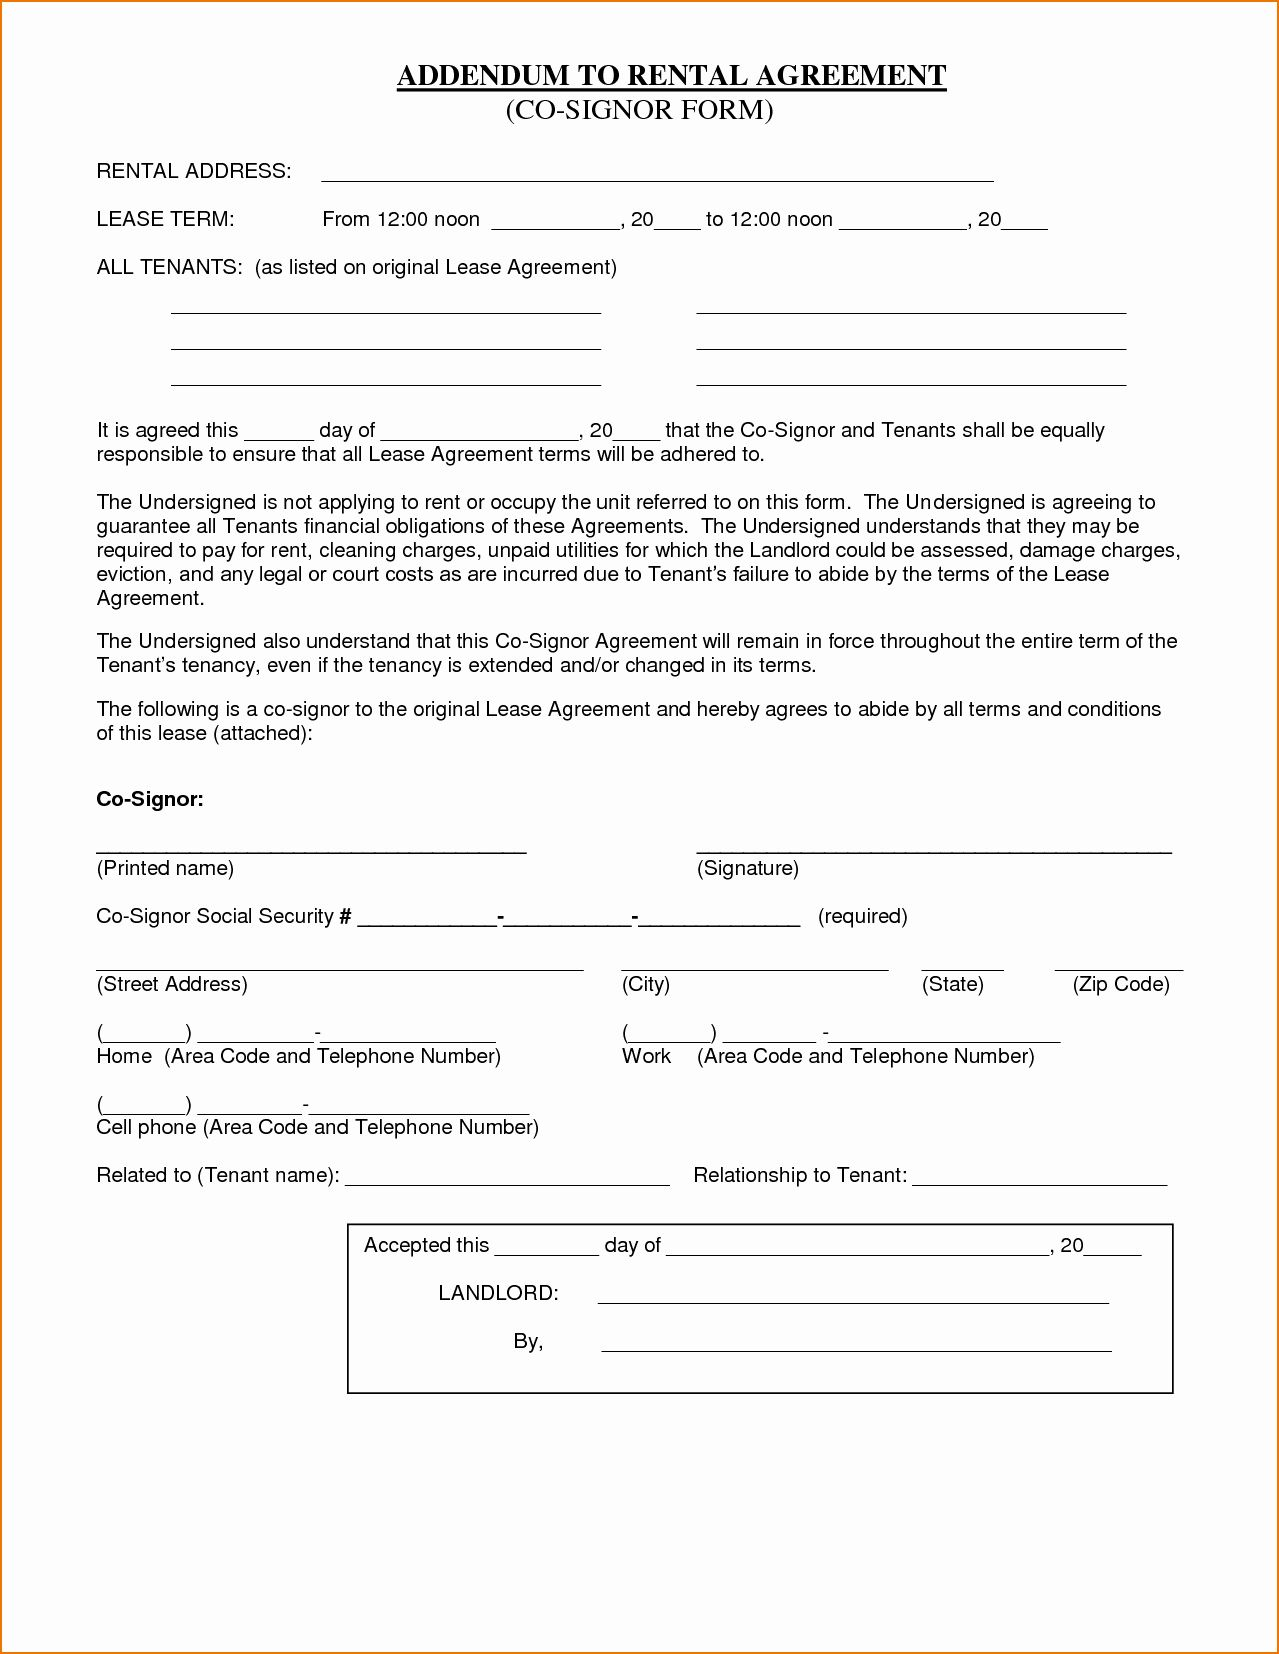 Basic Lease Agreement Template Free New 8 Simple Rental Agreement Template In 2020 Rental Agreement Templates Contract Template Lease Agreement Bounce house rental agreement template